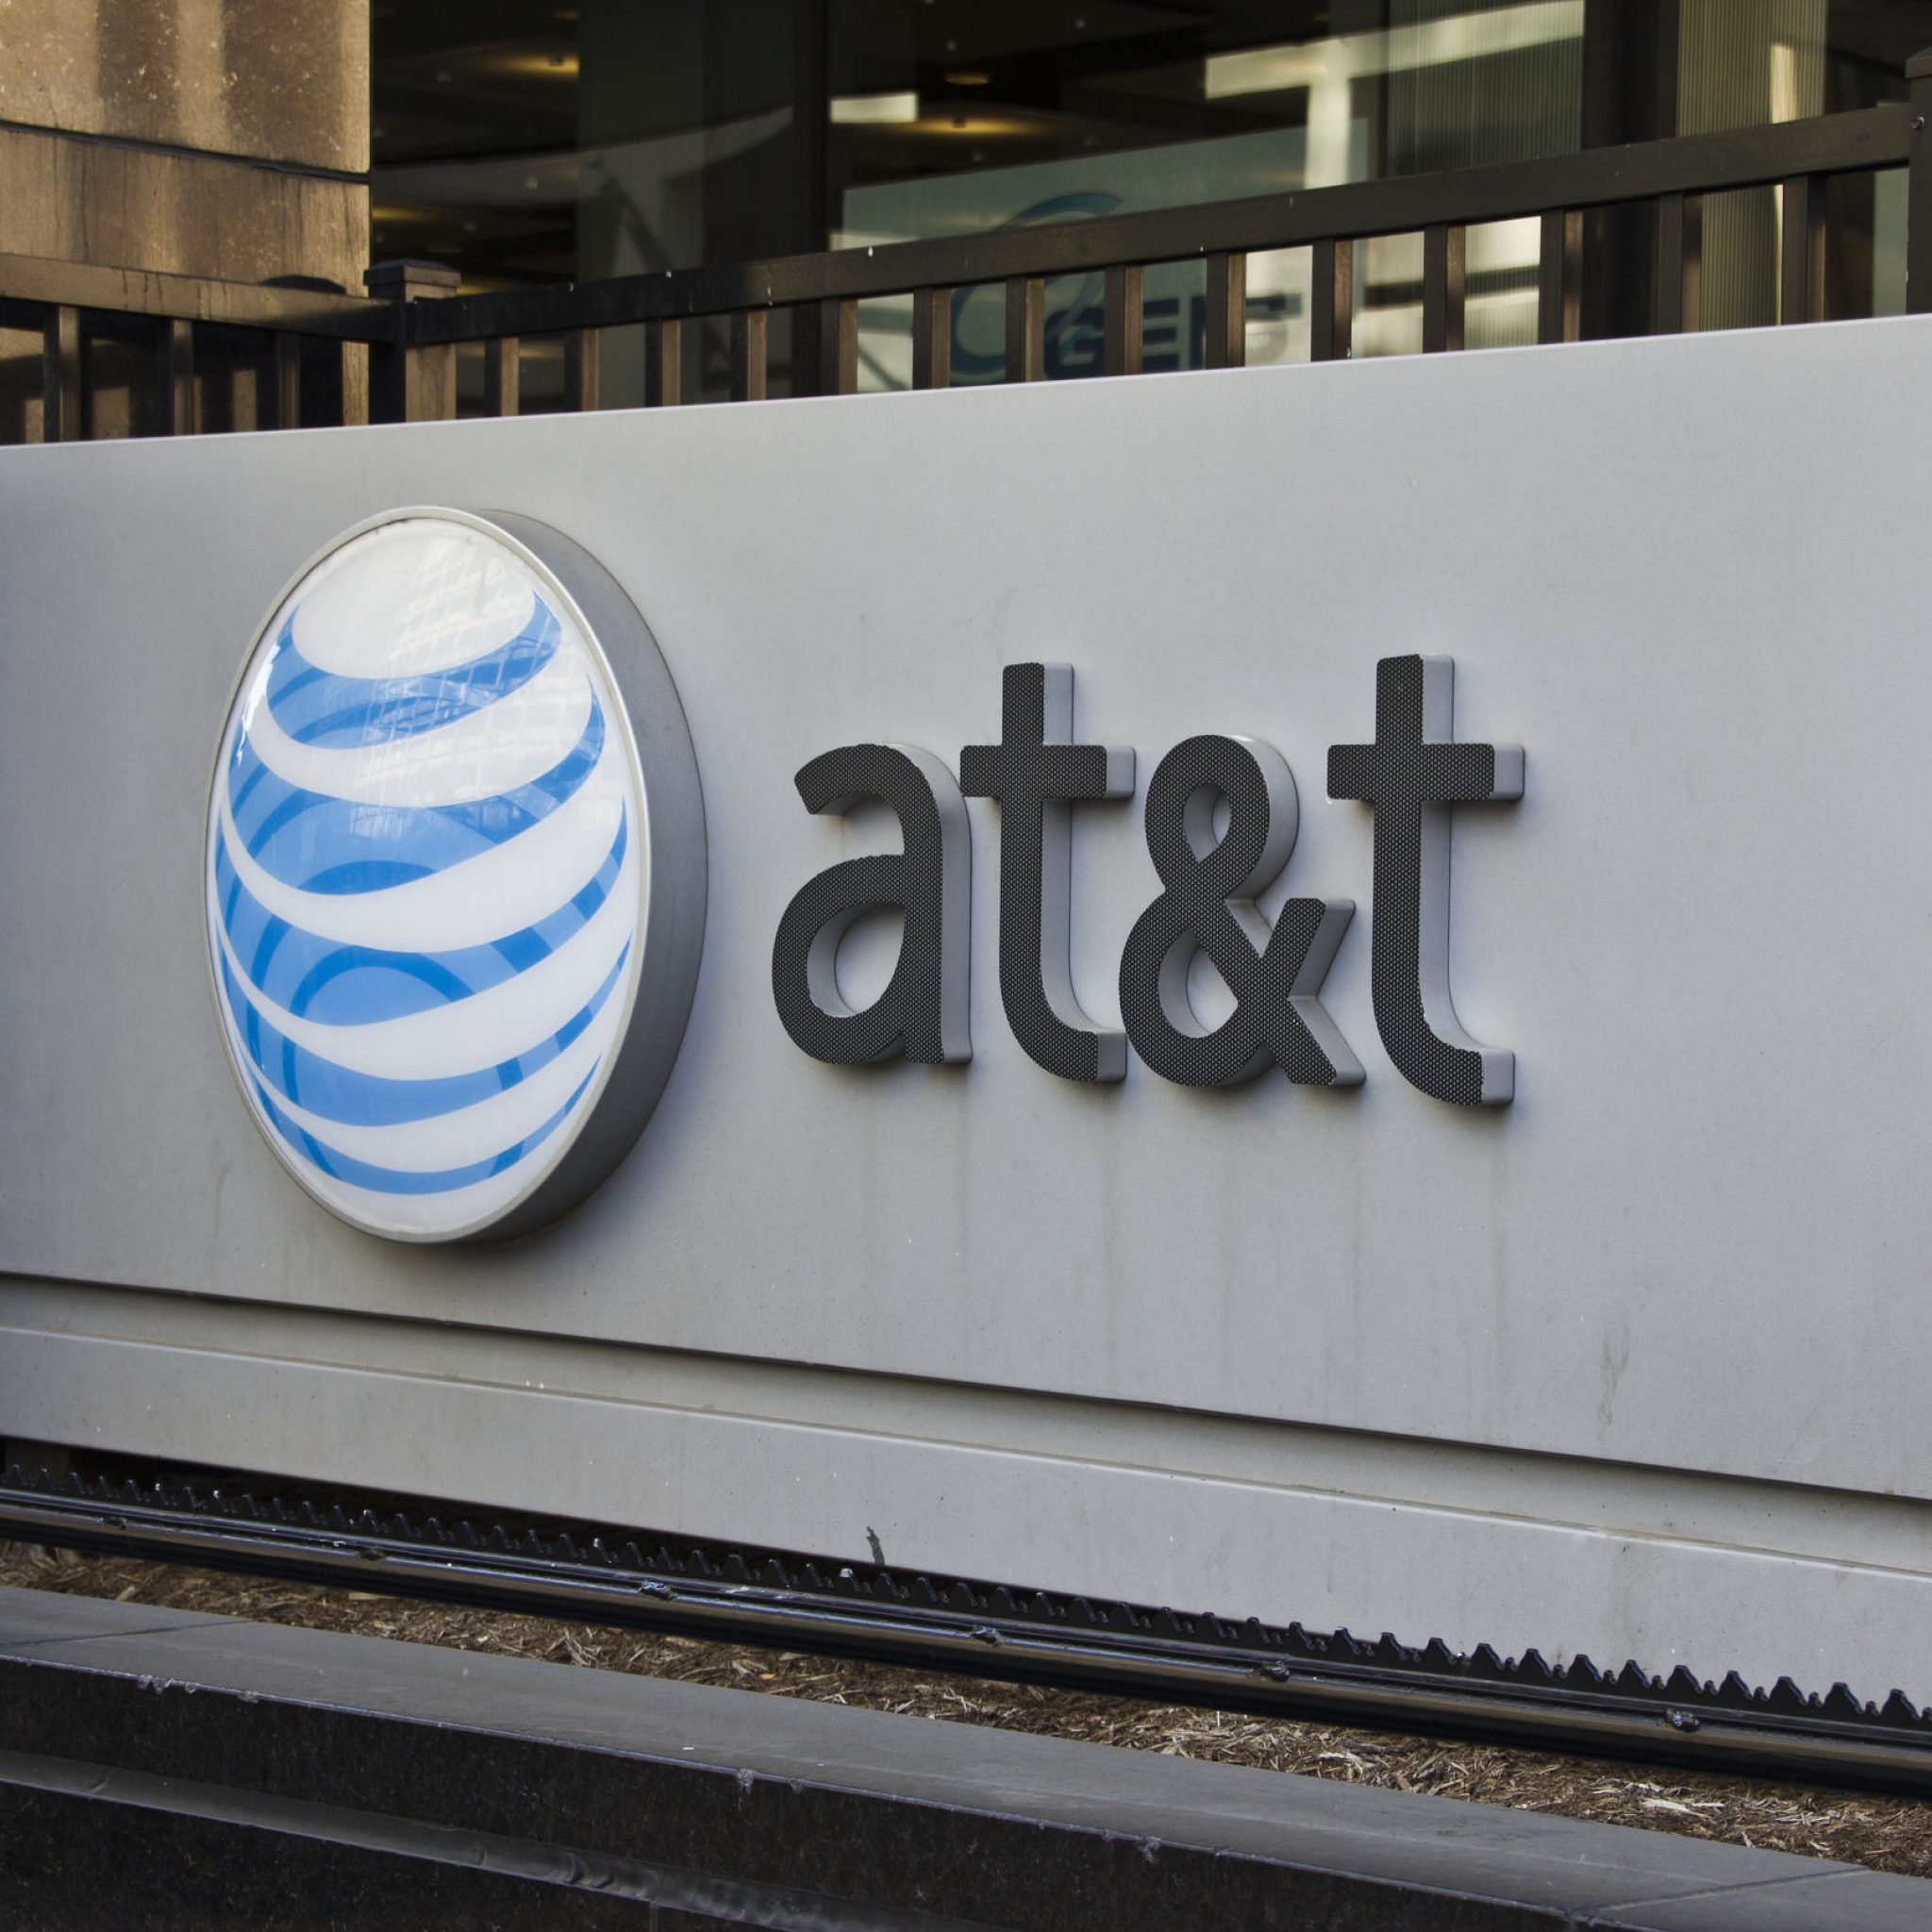 Att extends unlimited data to all postpaid wireless customers ccuart Choice Image